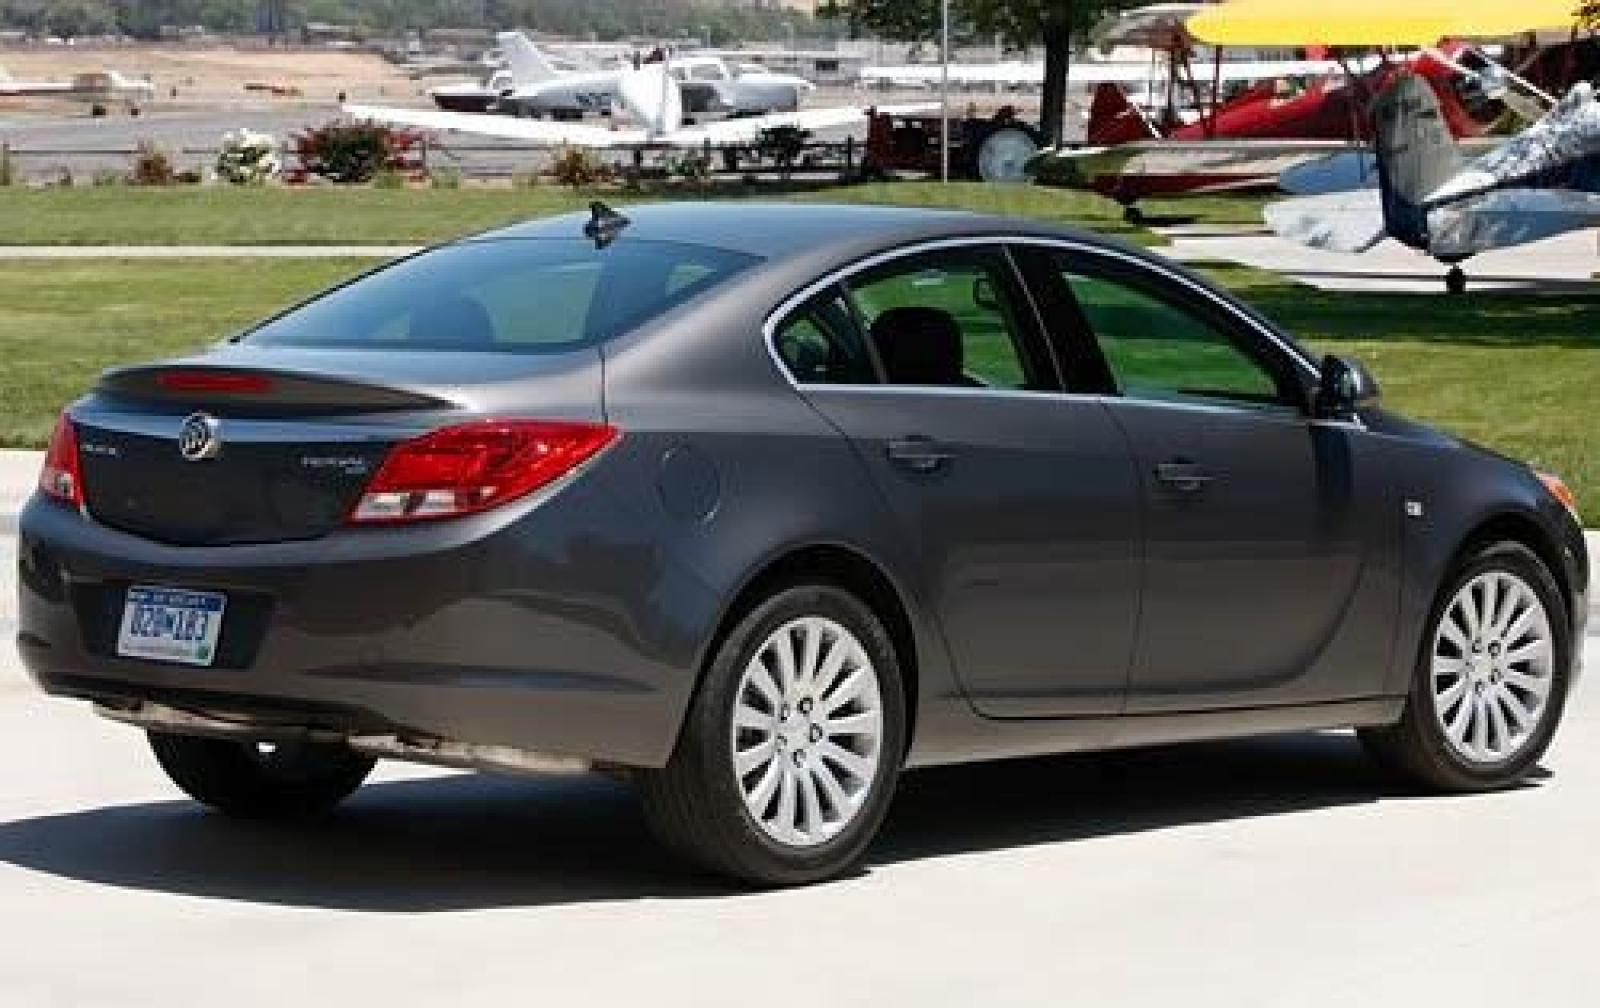 trend buick first front cxl quarter in motion test regal cars three fwd motor turbo